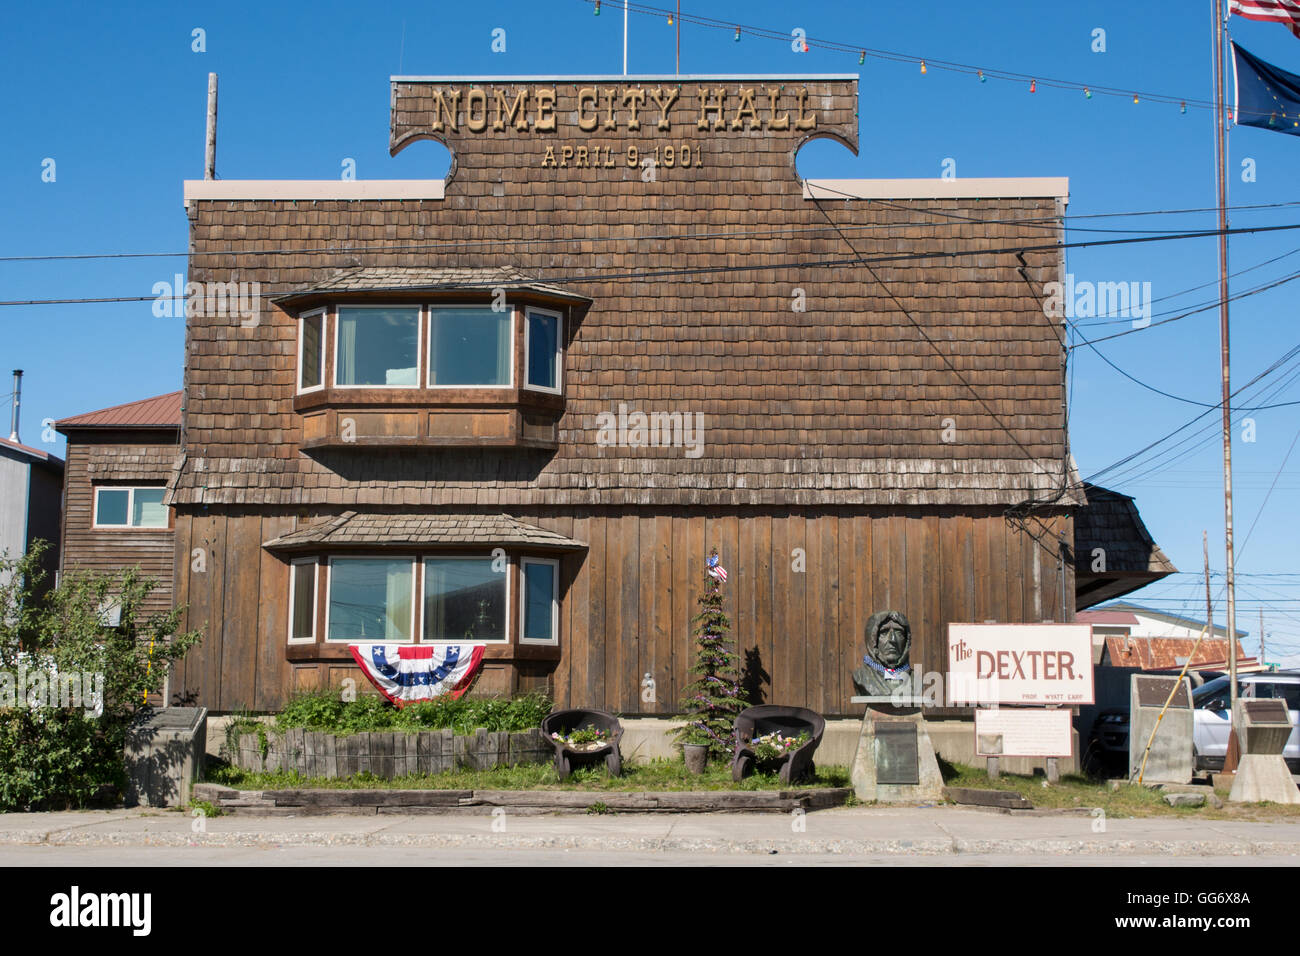 Alaska, Nome. Nome City Hall, est. April 9, 1901. -